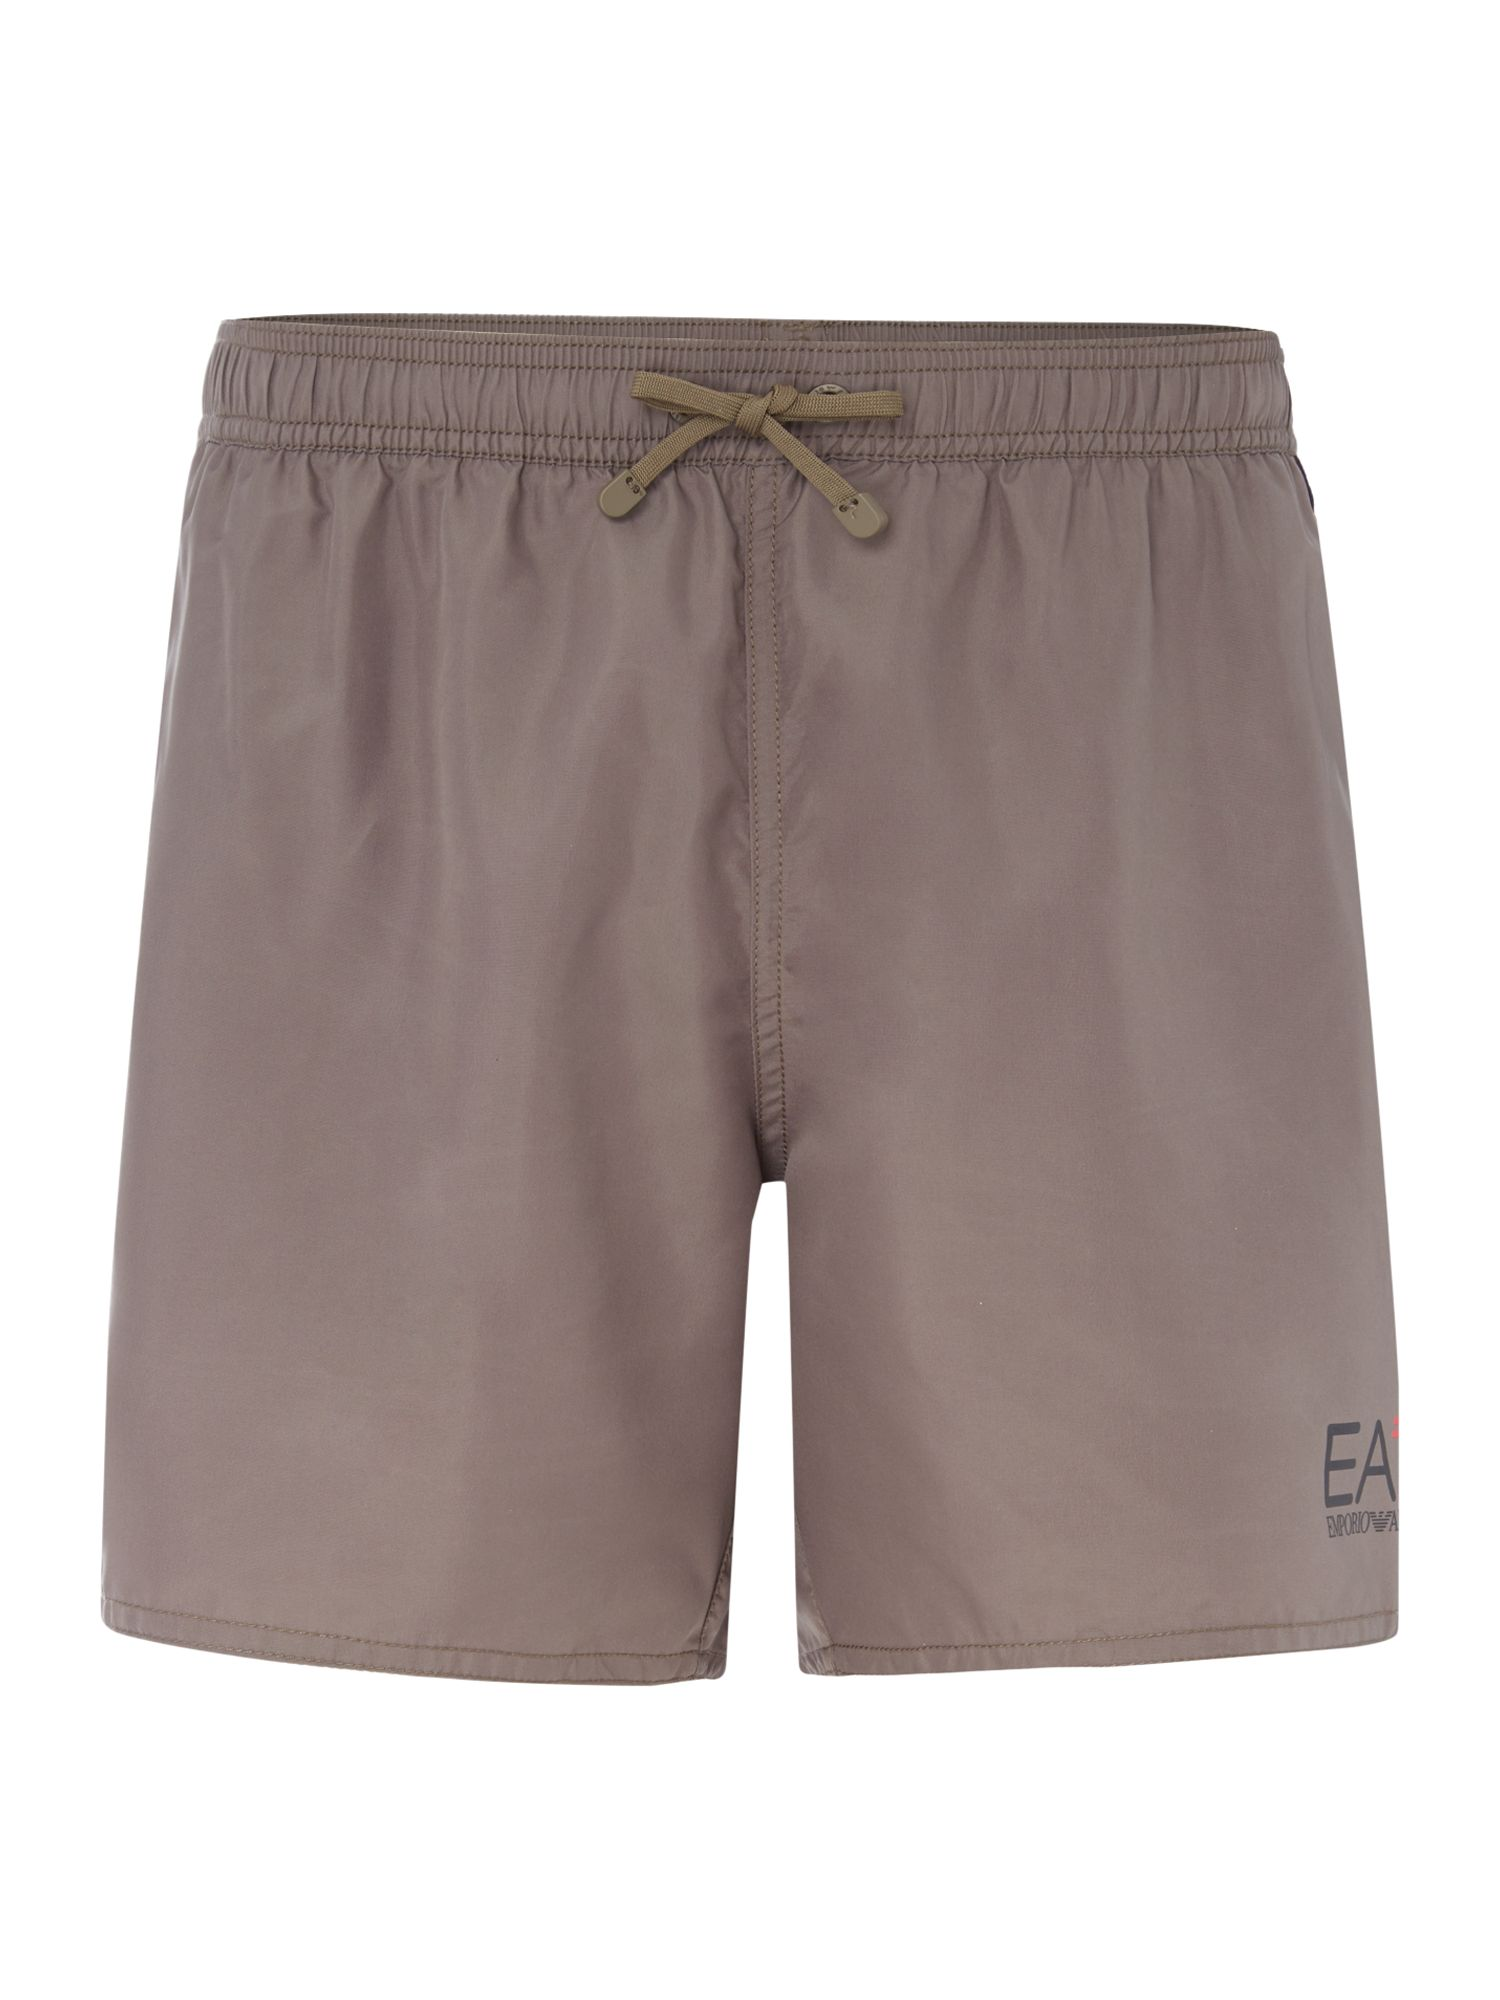 Men's EA7 Plain Logo Swim Shorts, Grey